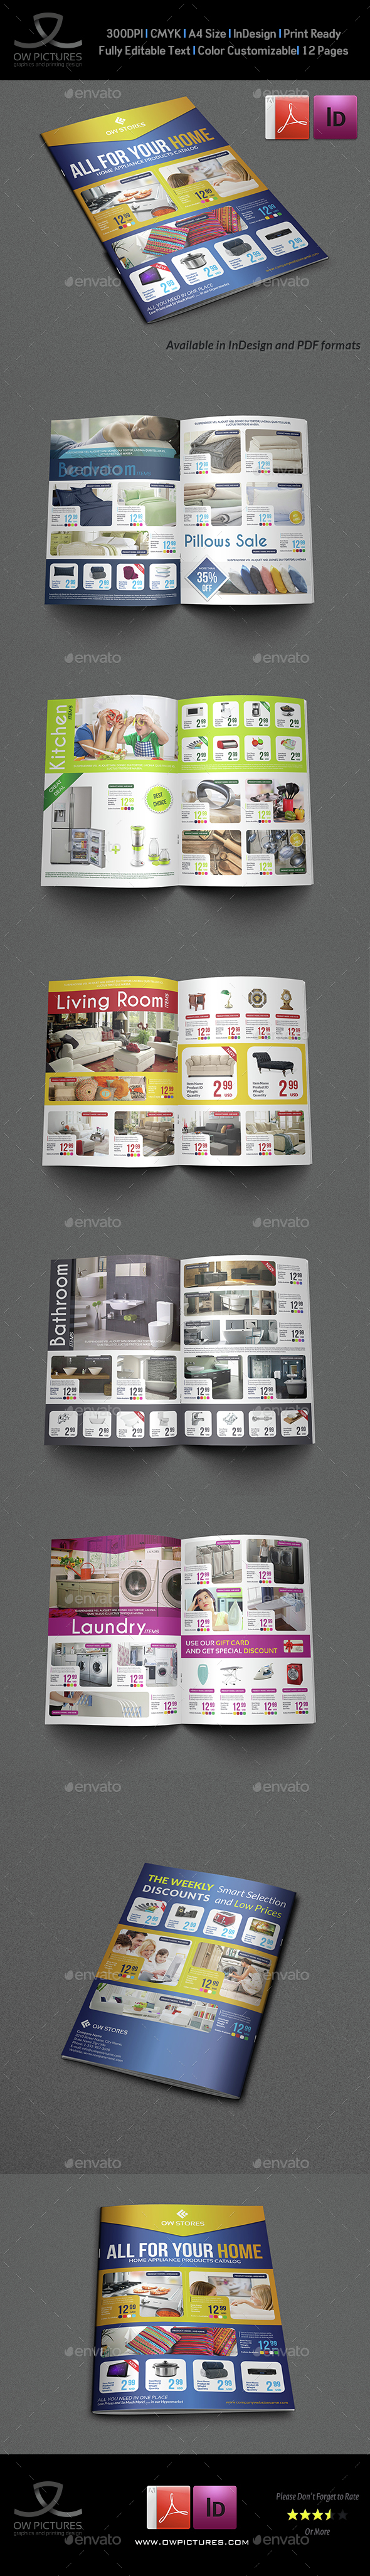 Products Catalog Brochure Template Vol3 - 12 Pages - Catalogs Brochures